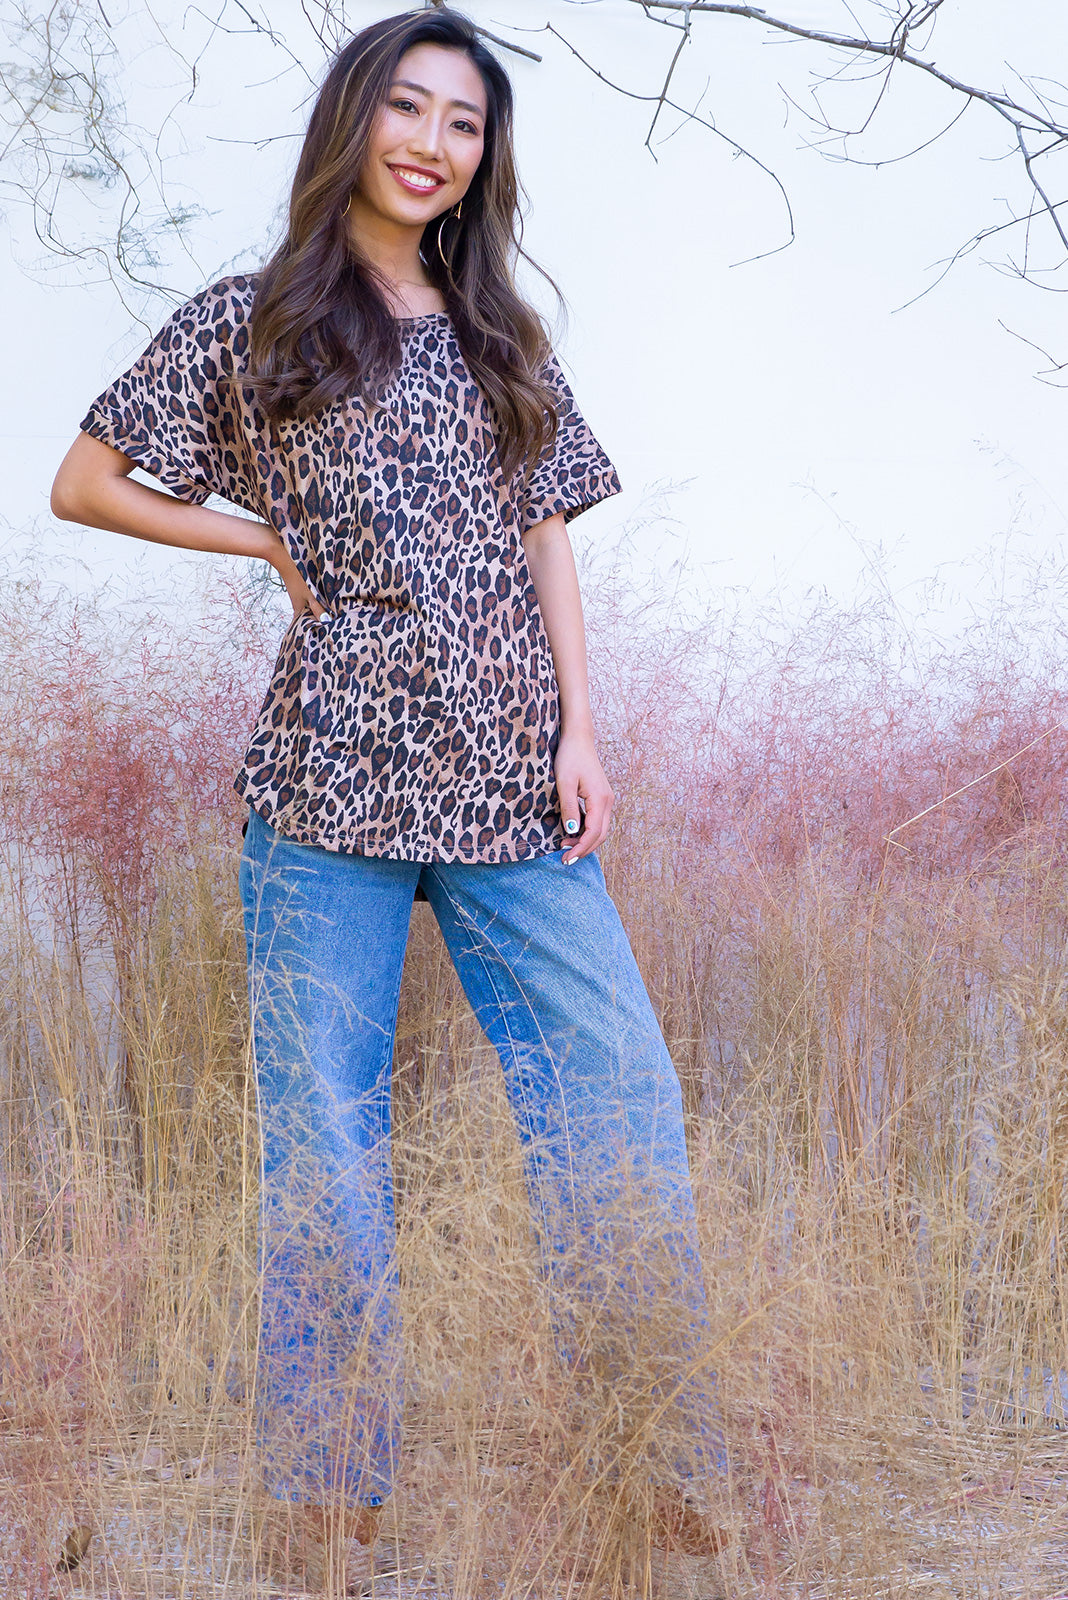 Artemis Animale Tee is a classic oversized leopard print T-shirt. Standard cut, curved at hem, Flattering on ultra soft touch 95% polyester and 5% spandex. Can be worn tied up, loose or tucked in. Chic, cool, sophisticated, timeless.